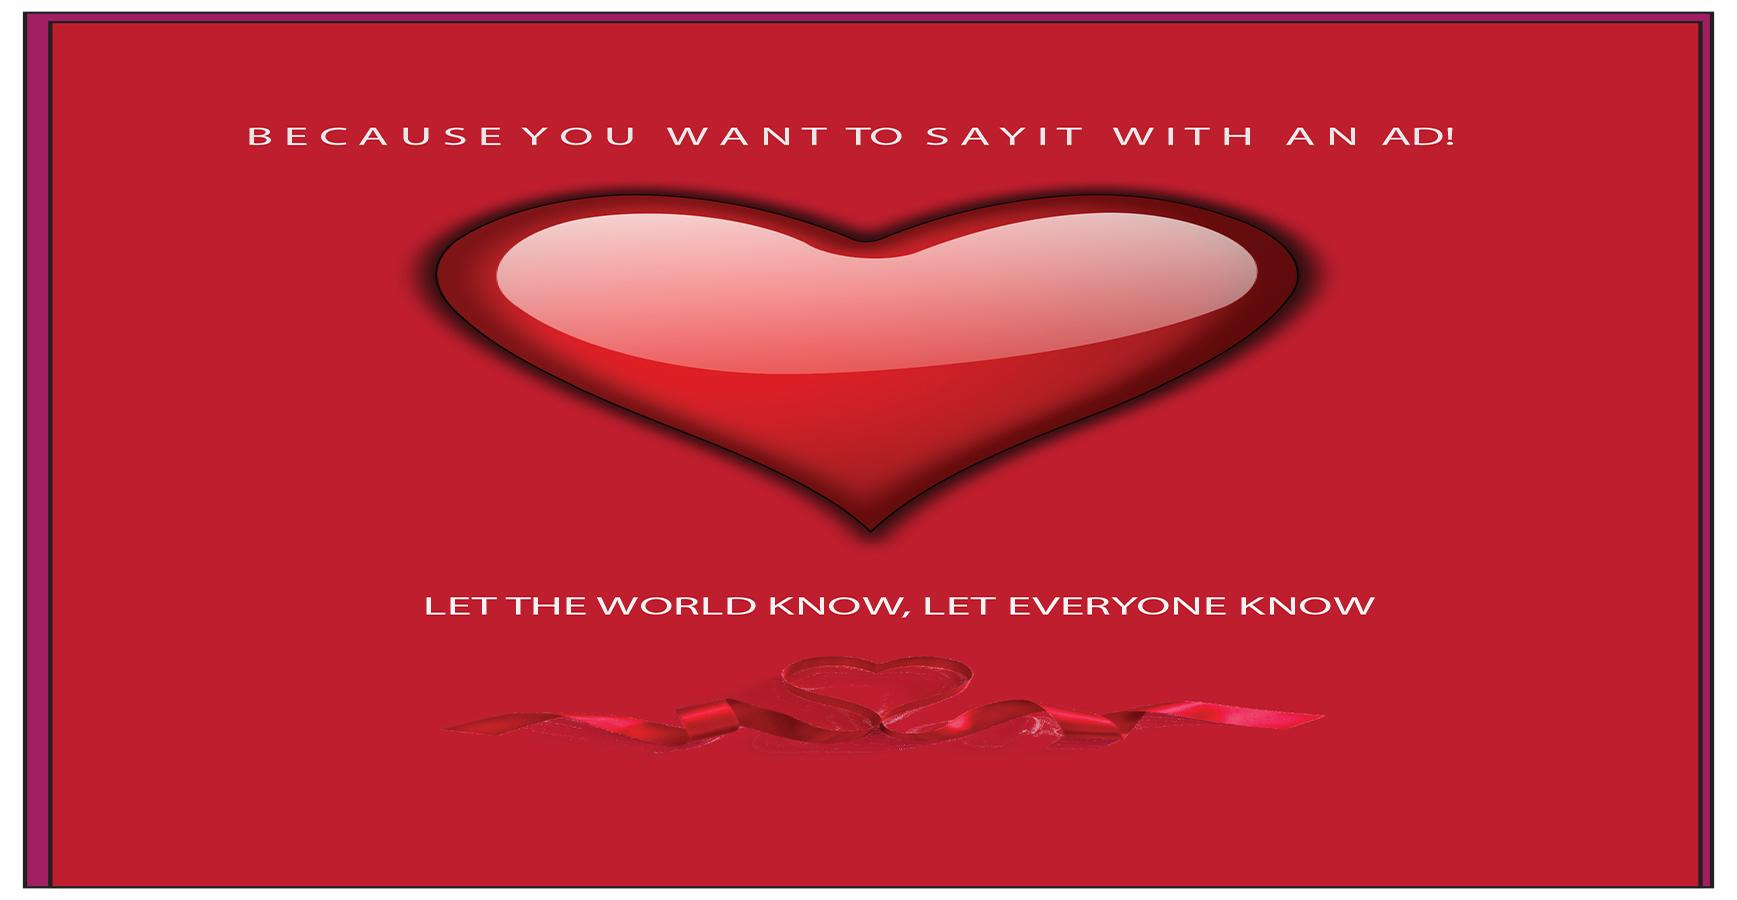 Buy Your Valentine's Day Ad Today!